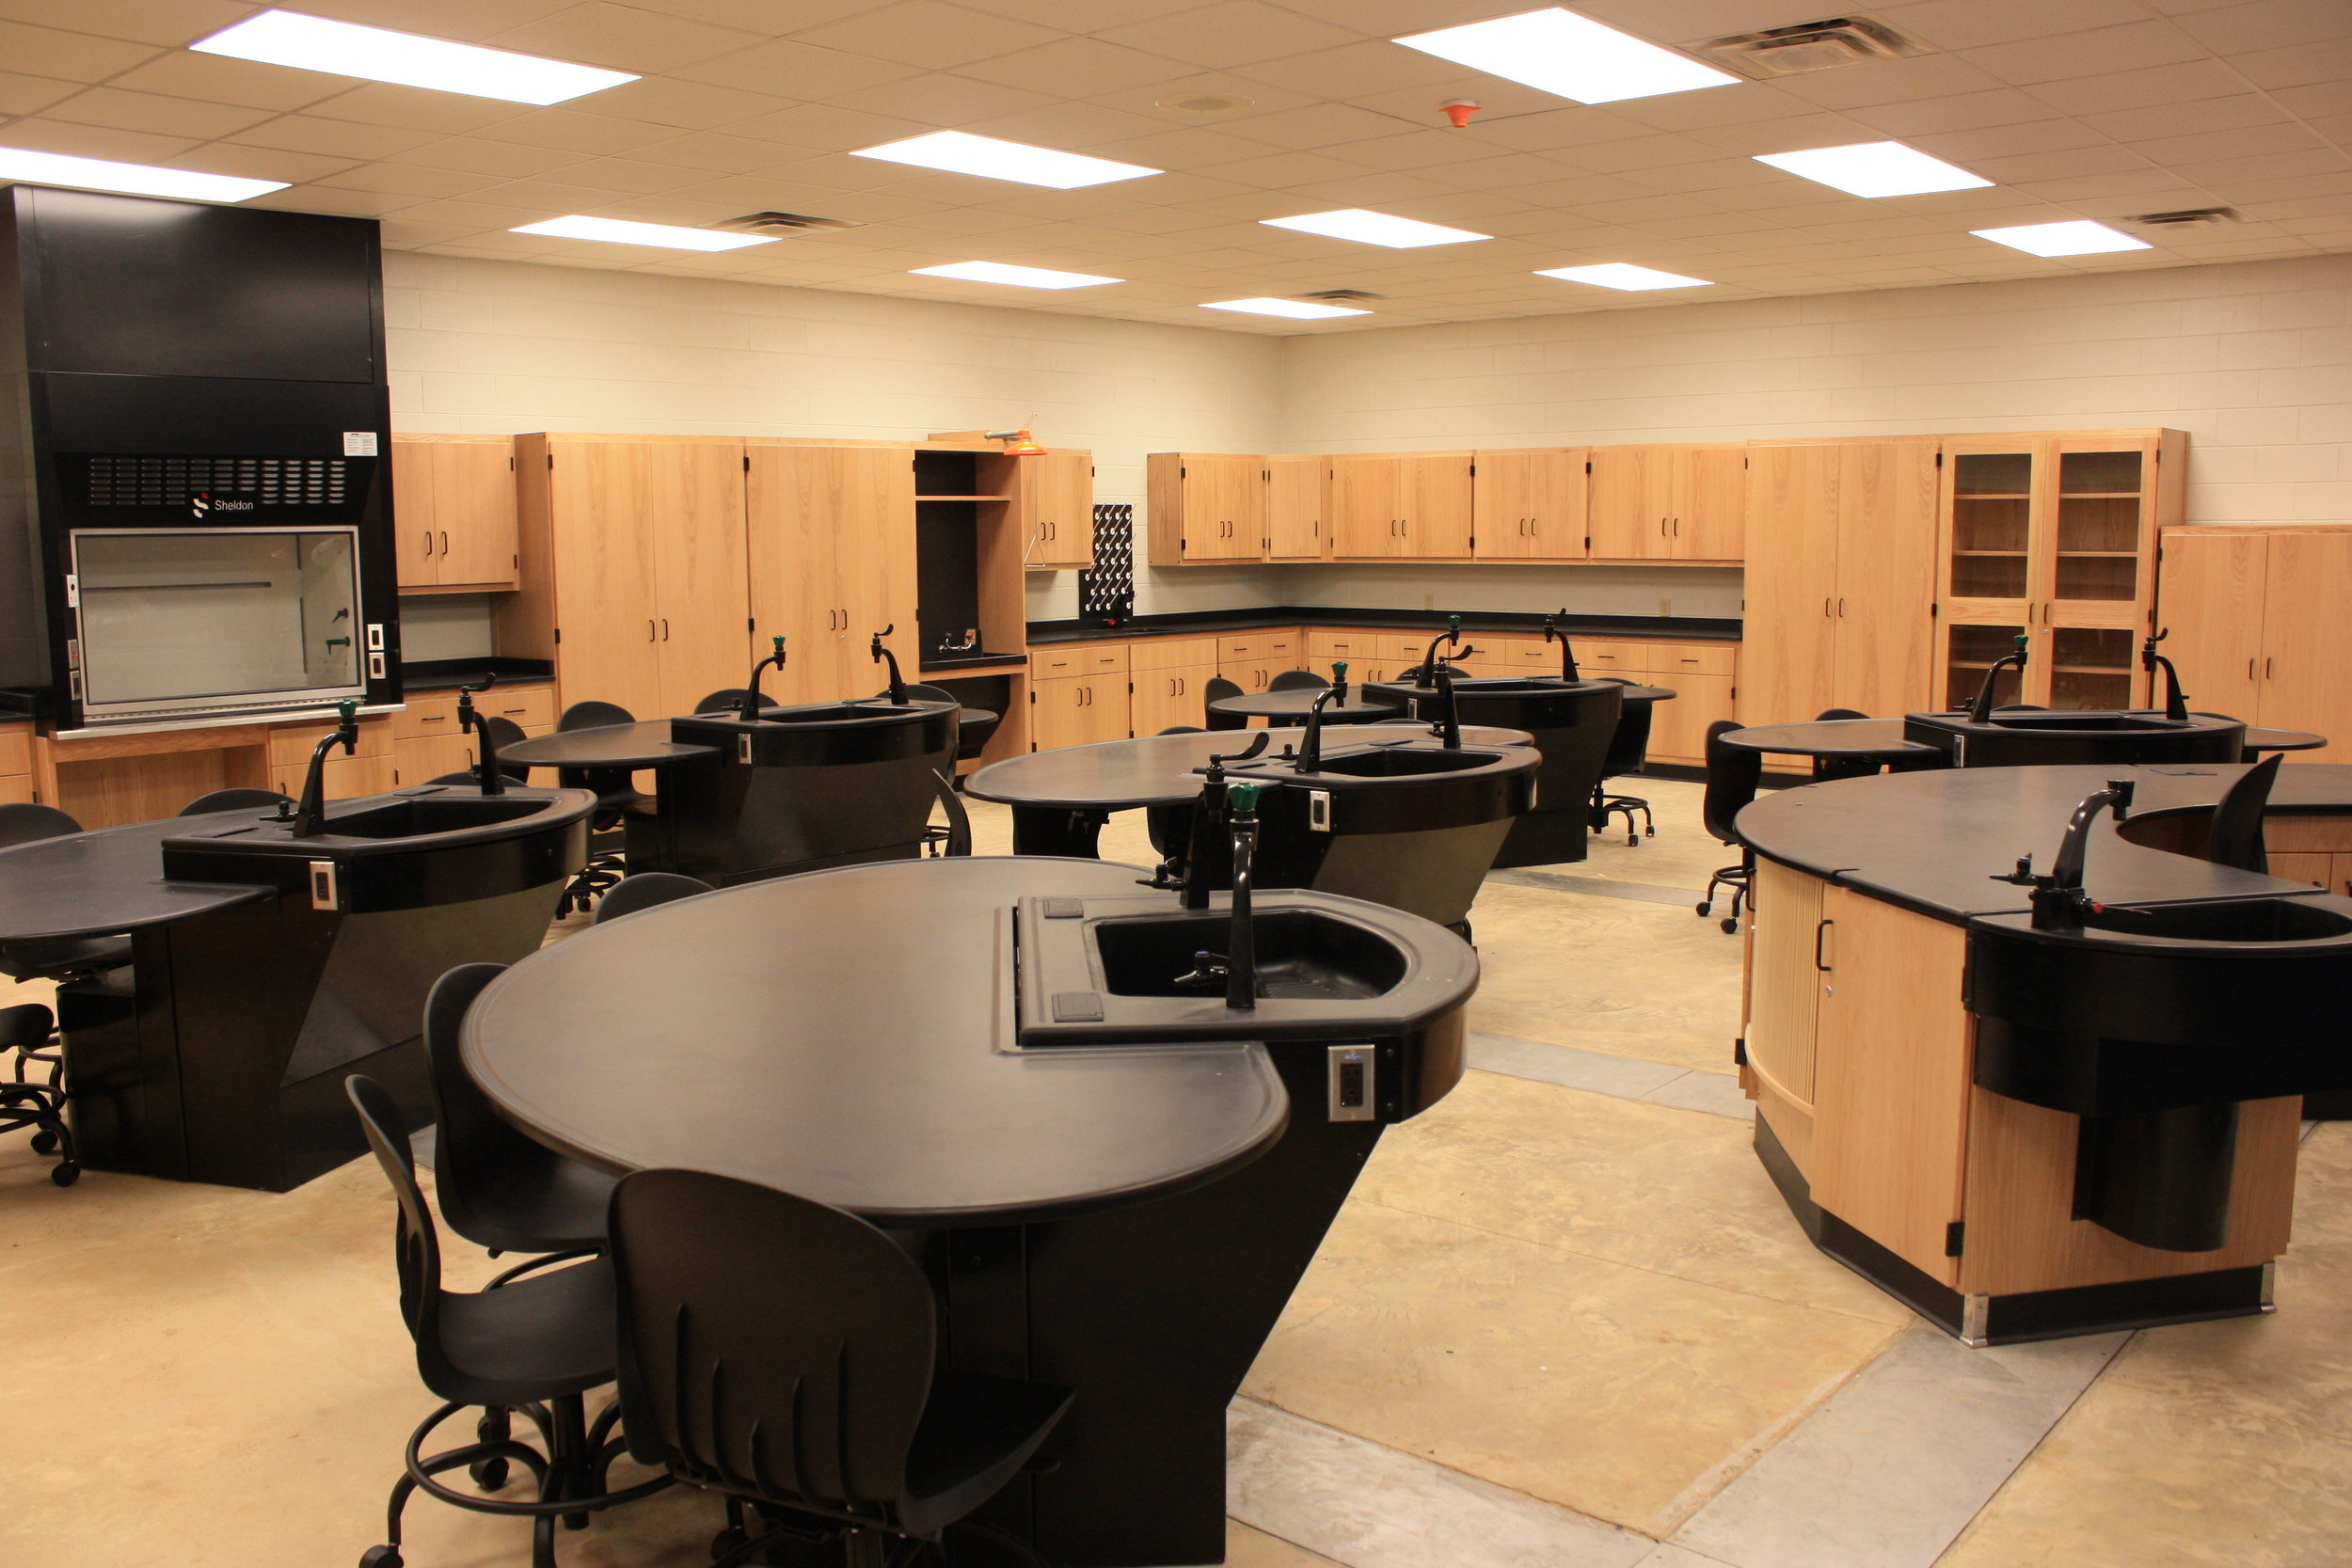 Axis-Infinity-Lab-Tables.JPG